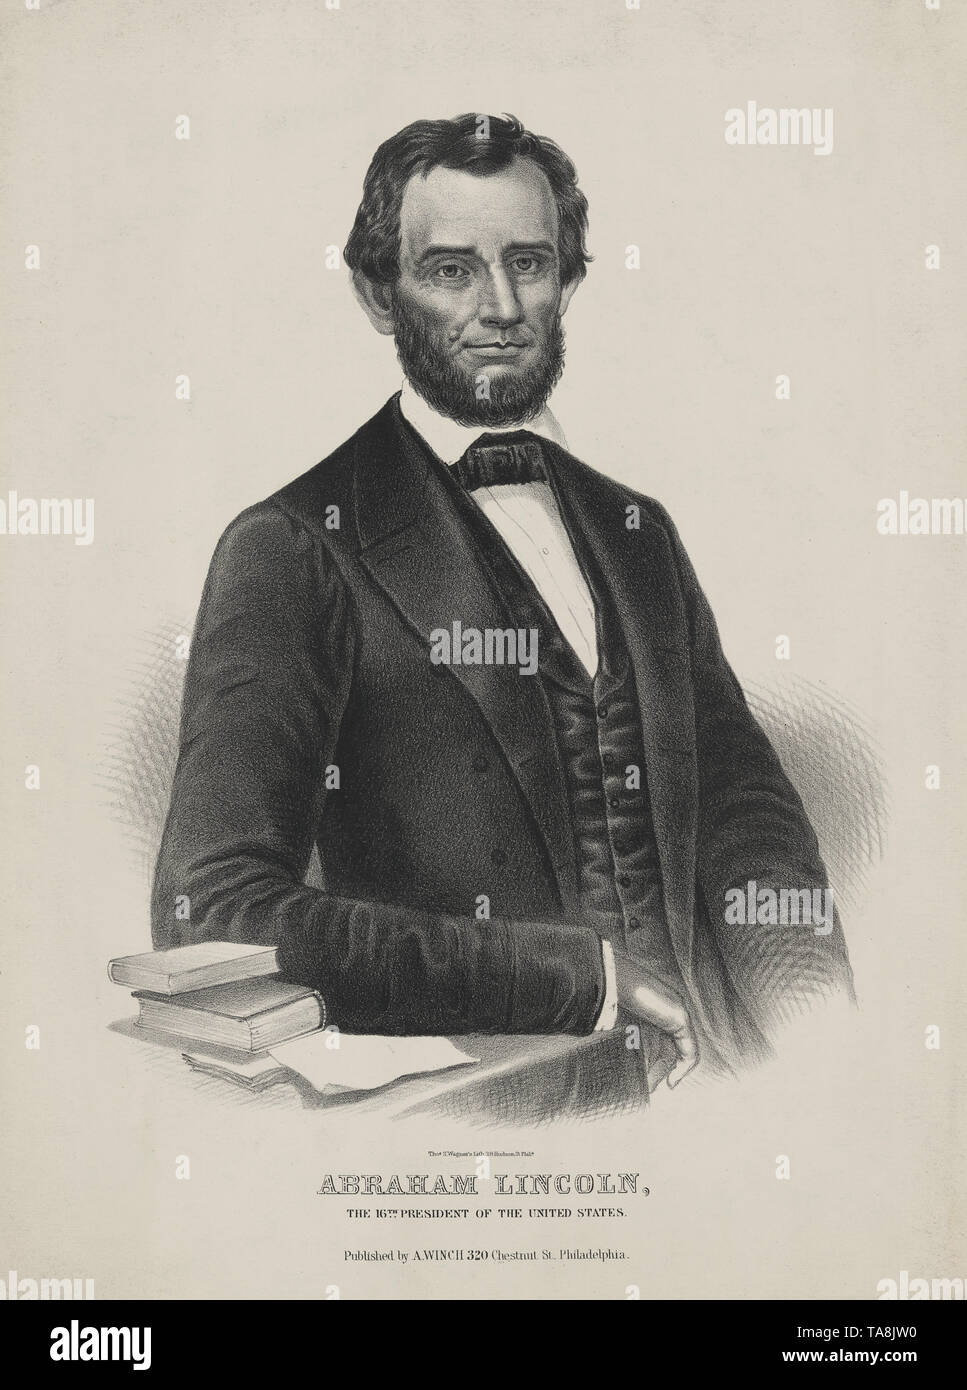 Abraham Lincoln, the 16th President of the United States, Lithograph by Thomas S. Wagner, Published by A. Winch,  Philadelphia, 1860's - Stock Image